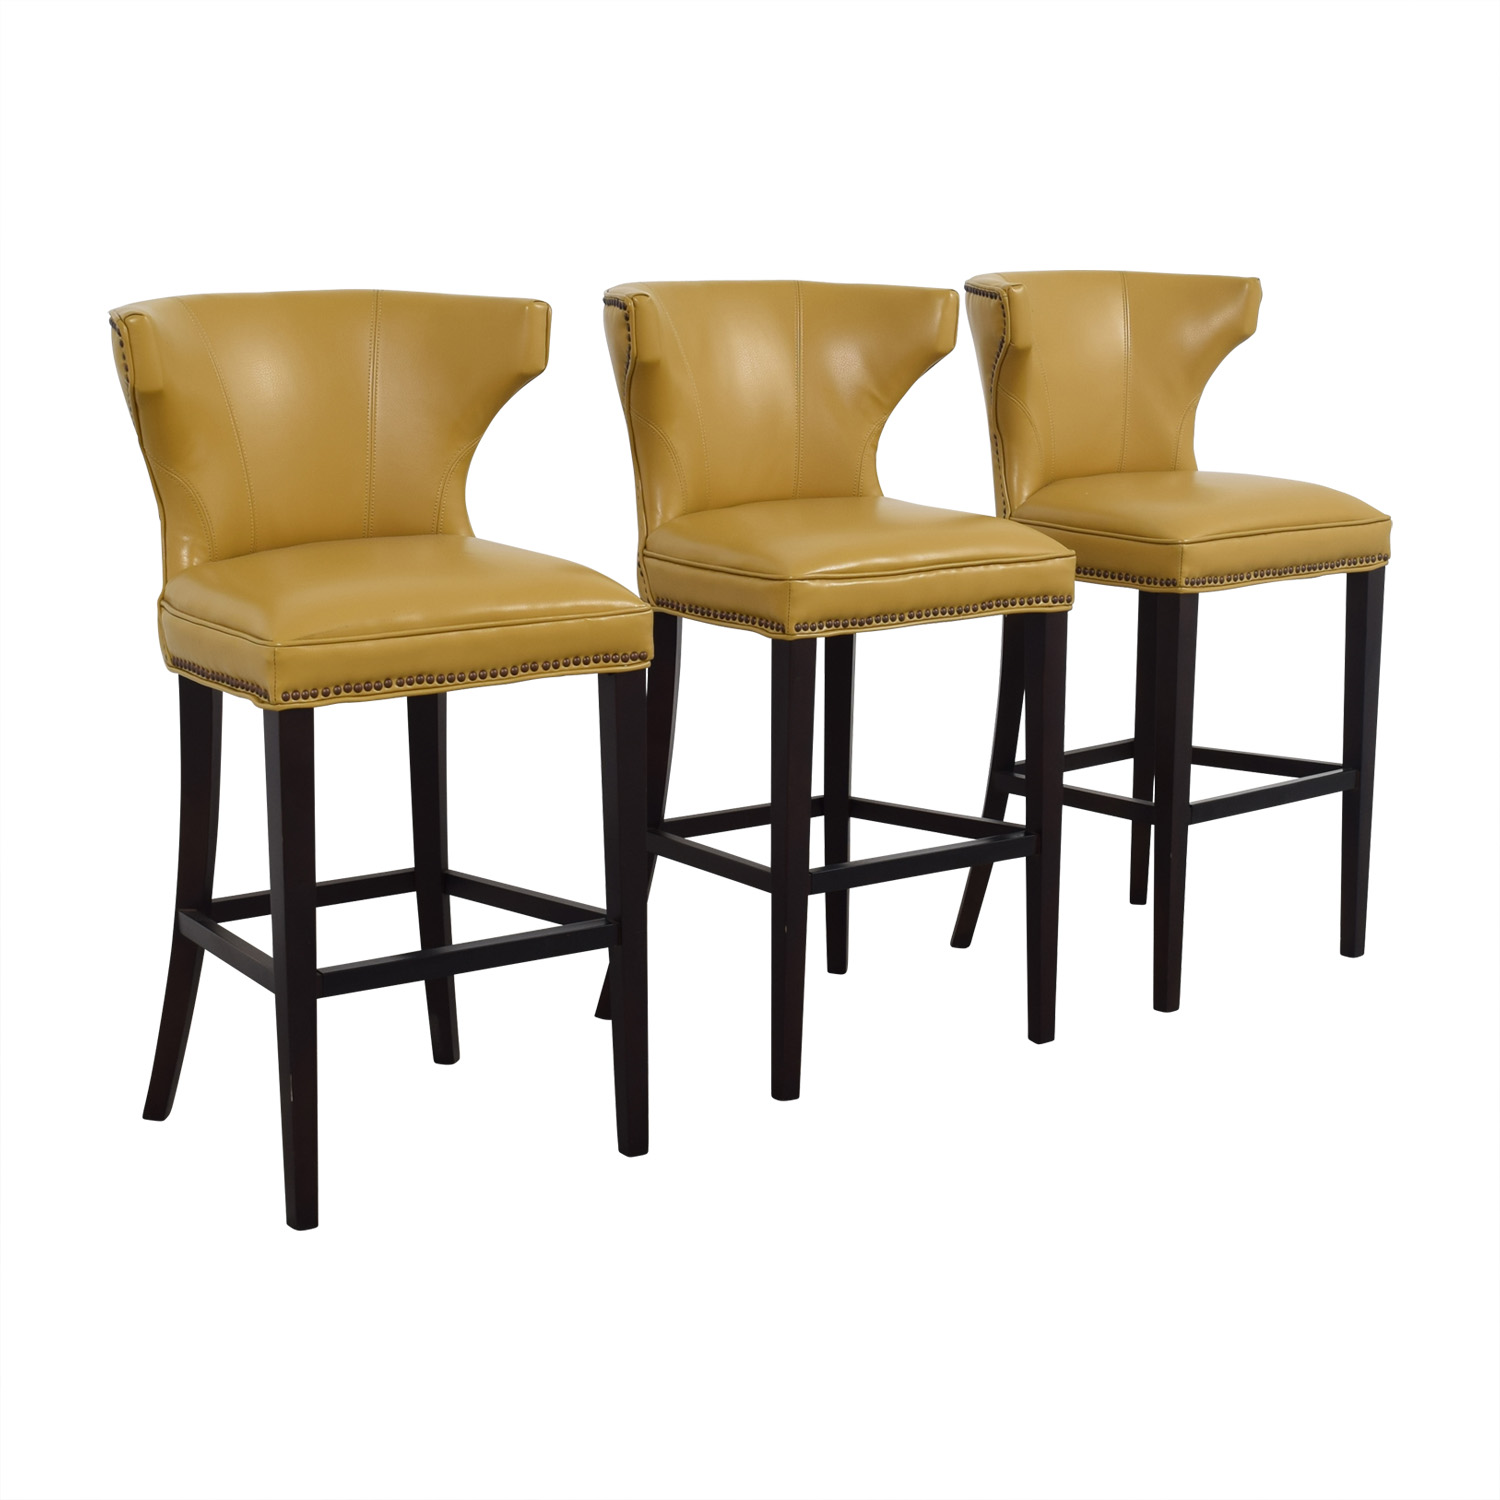 Yellow Stools Furniture. Grandin Road Mustard Yellow Bar Stools Used  Furniture O